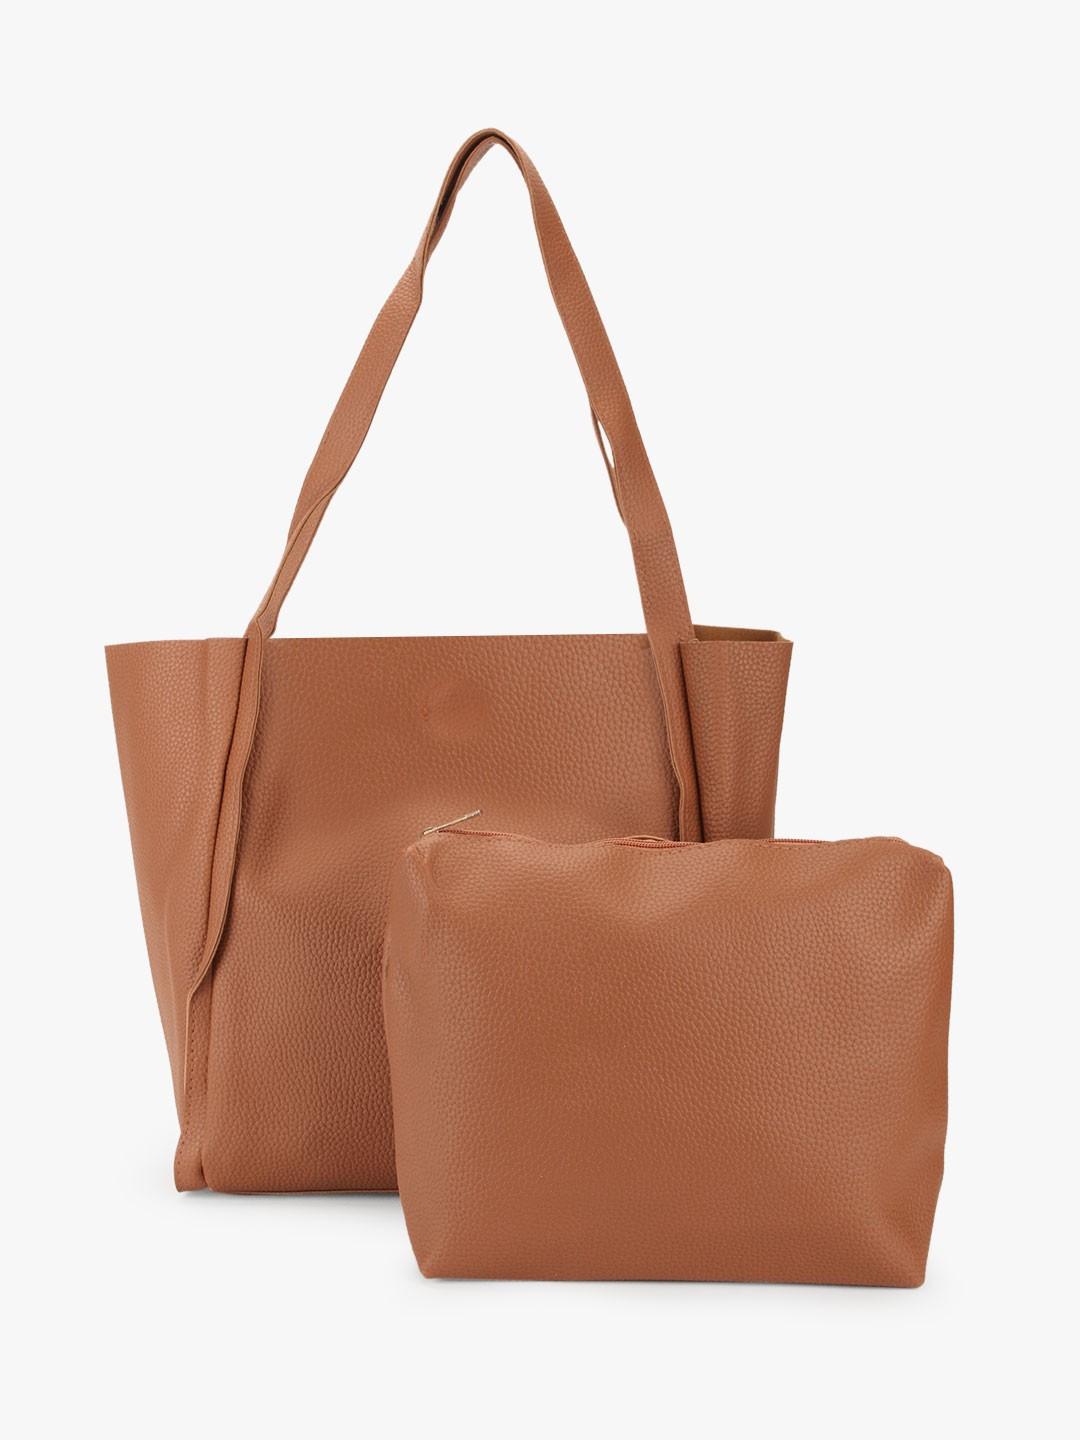 Style Fiesta Tan Tote Bag With Pouch 1